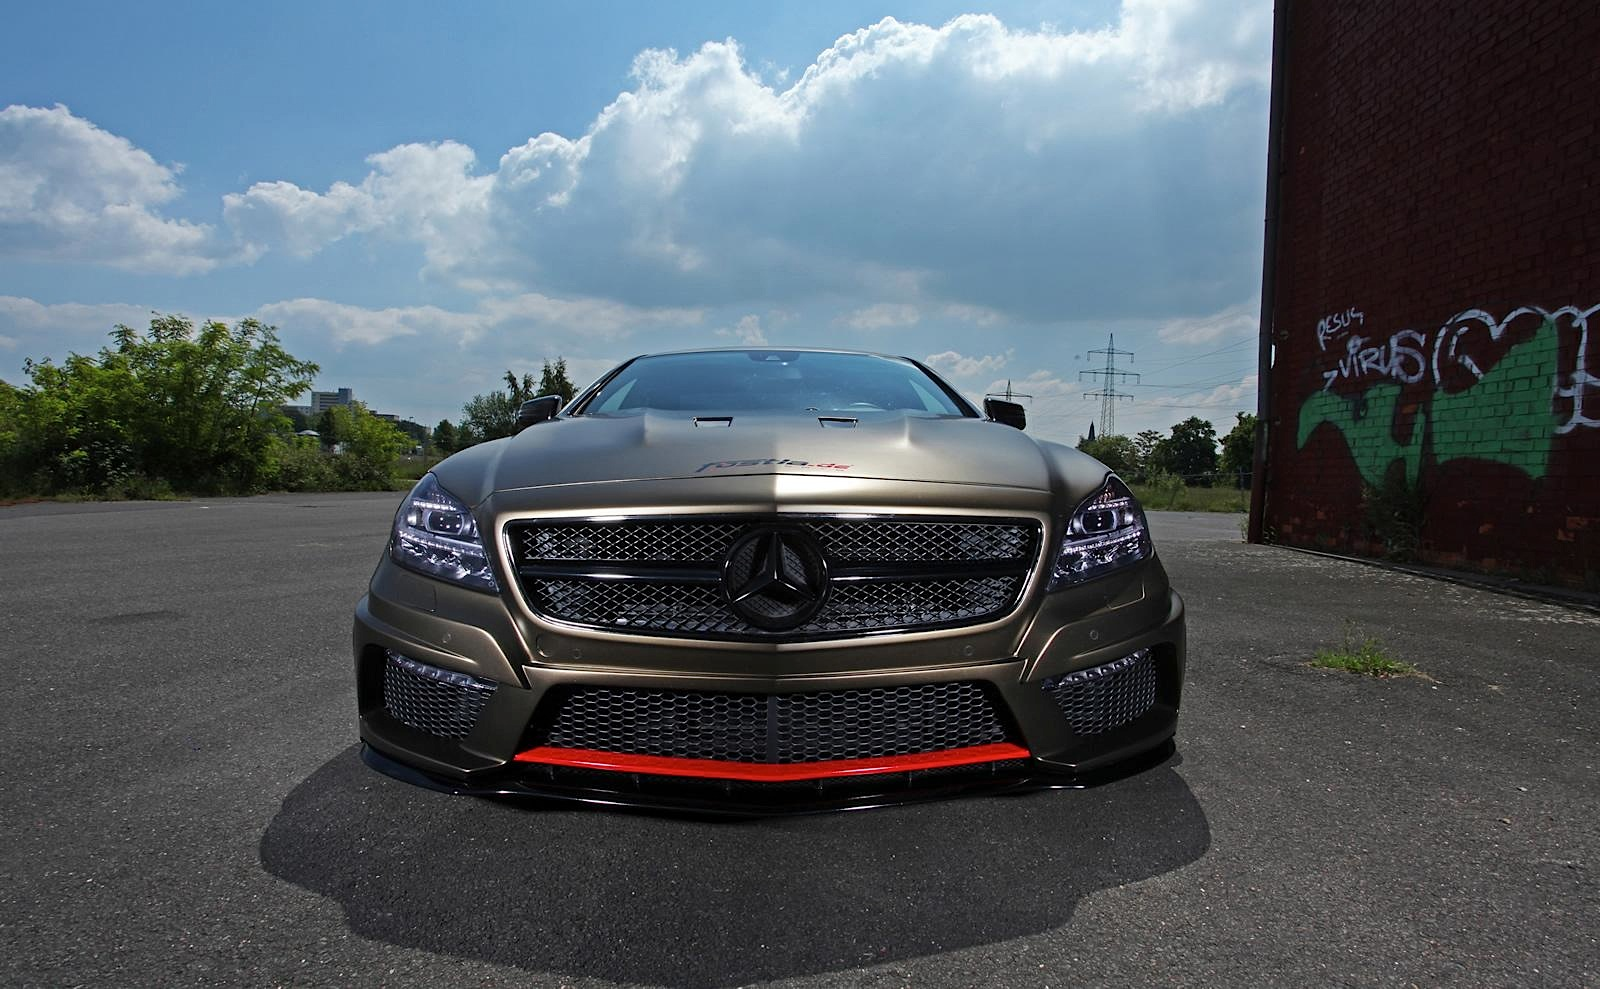 Stanced mercedes benz cls by fostla is a bit too much for How much is a new mercedes benz